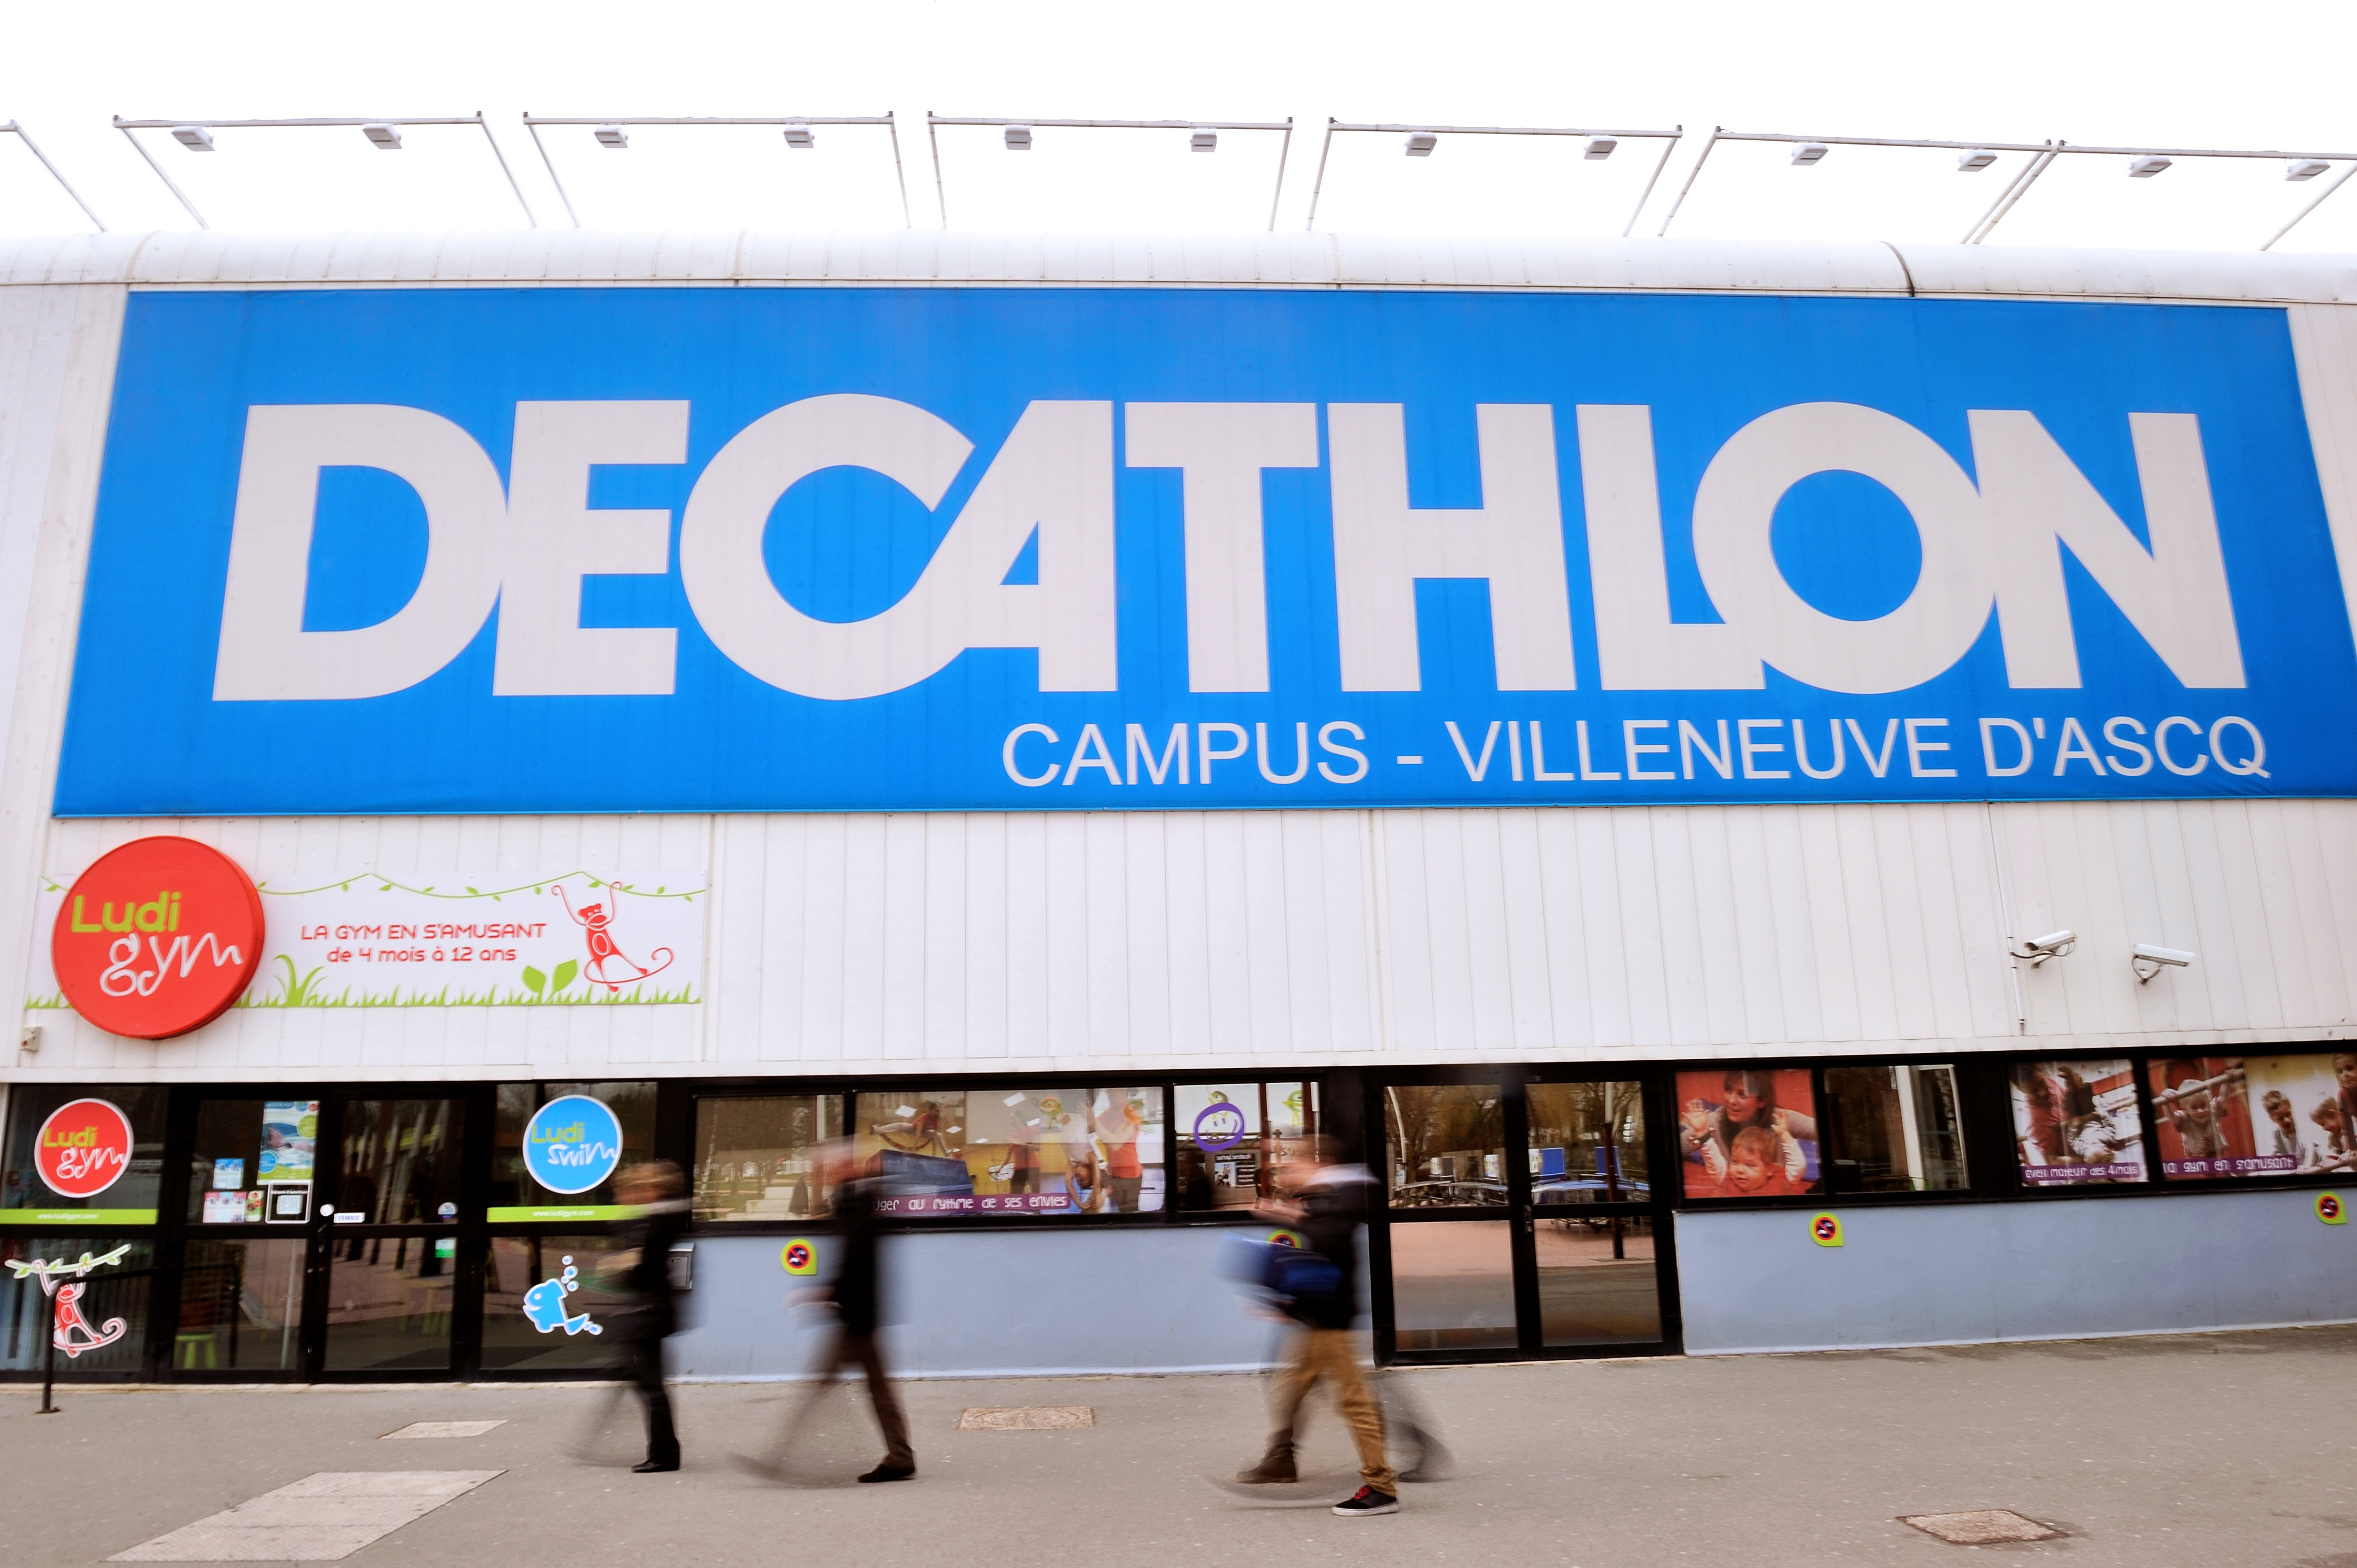 People walk in front of a Decathlon store in the French northern city of Villeneuve d'Ascq on Feb. 25, 2014